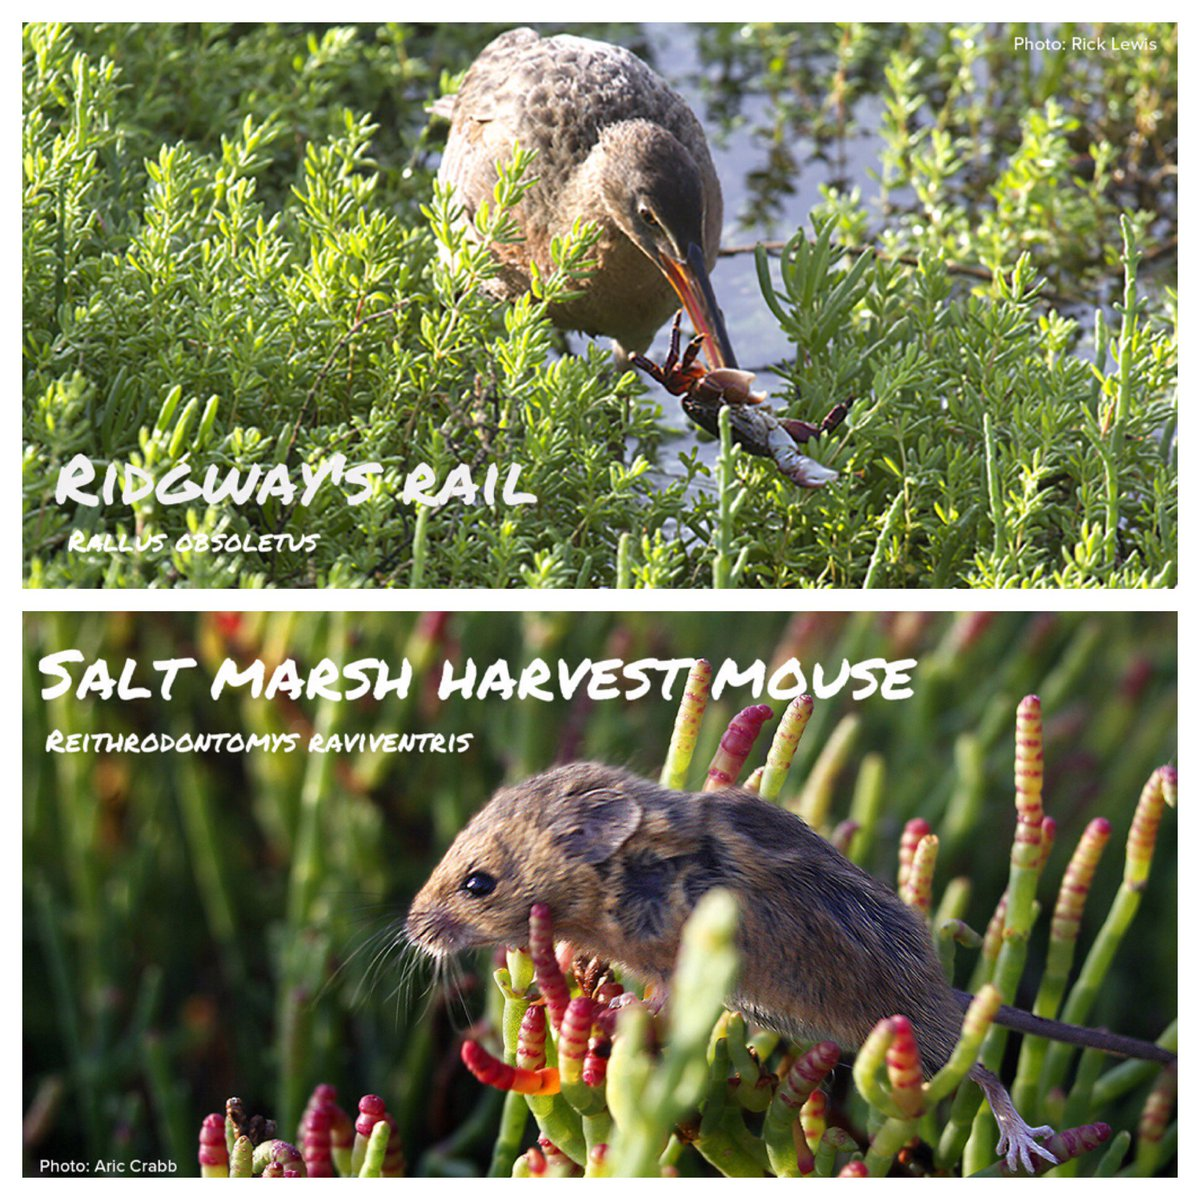 #SFBayDay is just 2 days away! Here are 2 endemic & endangered species that depend on healthy wetlands to survive! https://t.co/qJoEv8w0LB